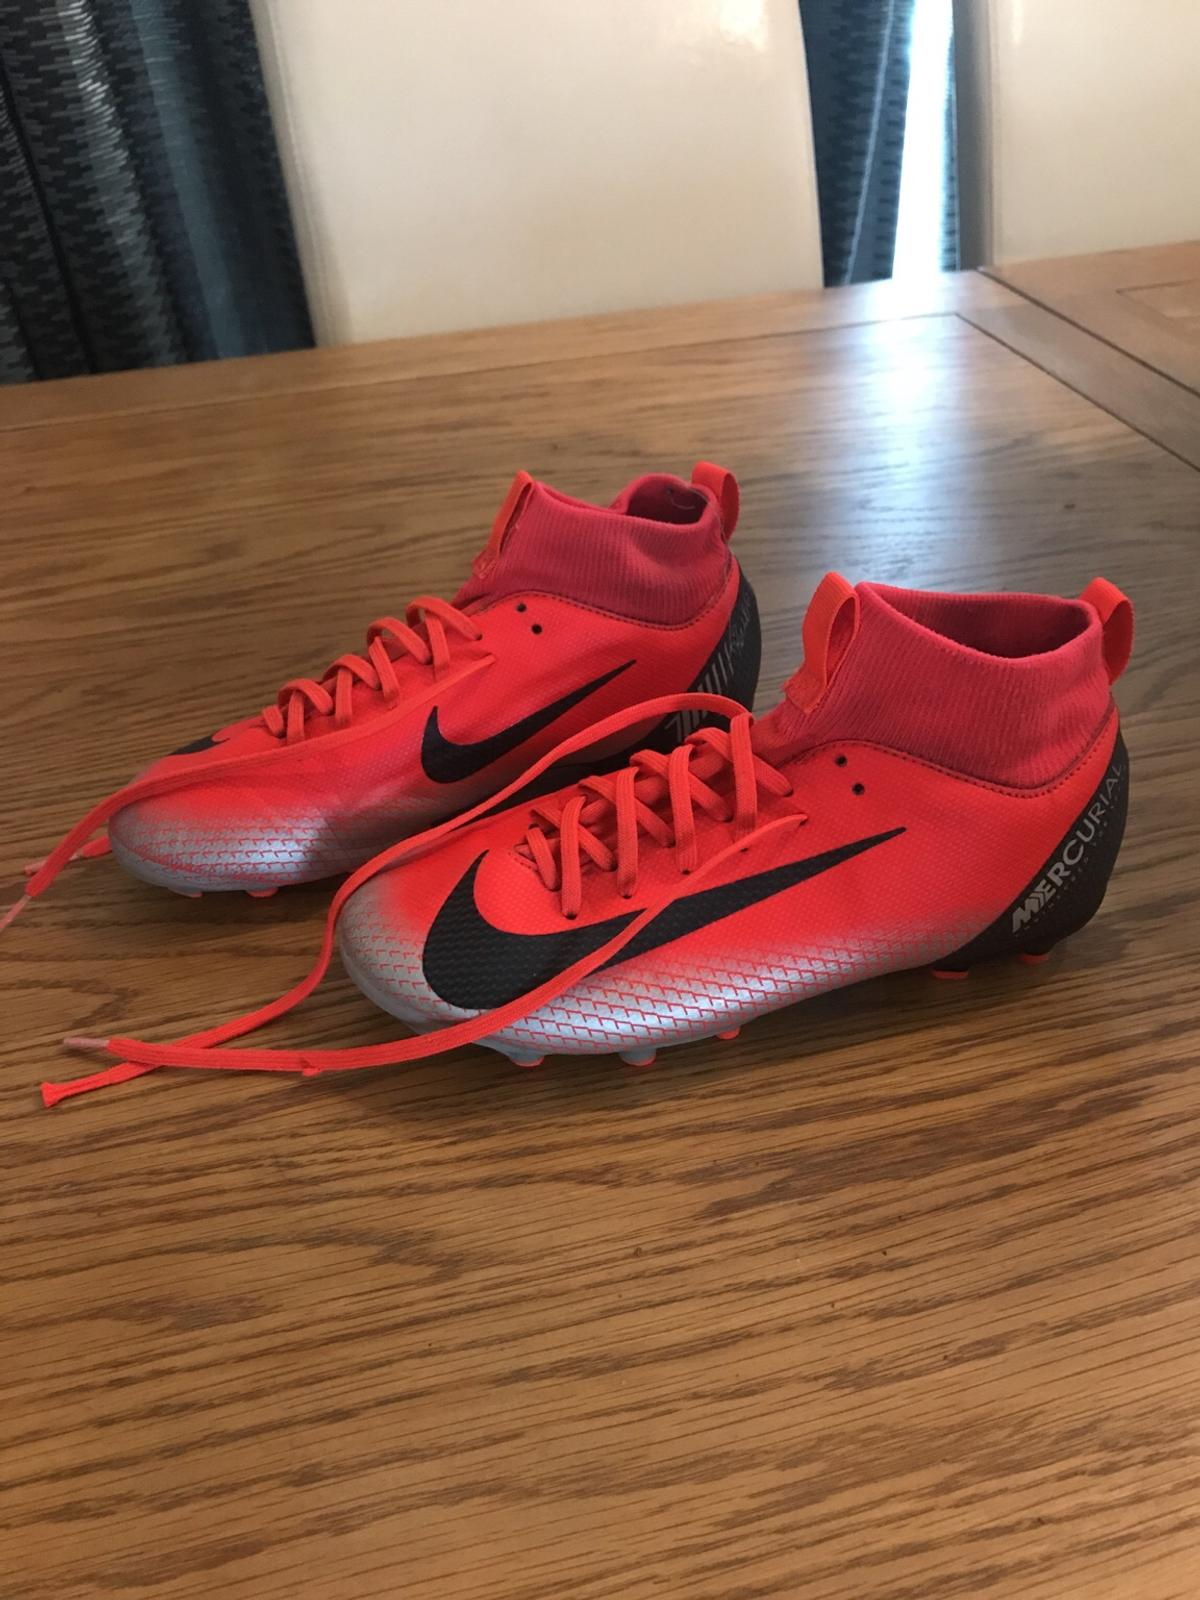 Memorizar Regularidad anfitriona  Nike Mercurial football boots size 3 in Nottinghamshire for £5.00 for sale  | Shpock